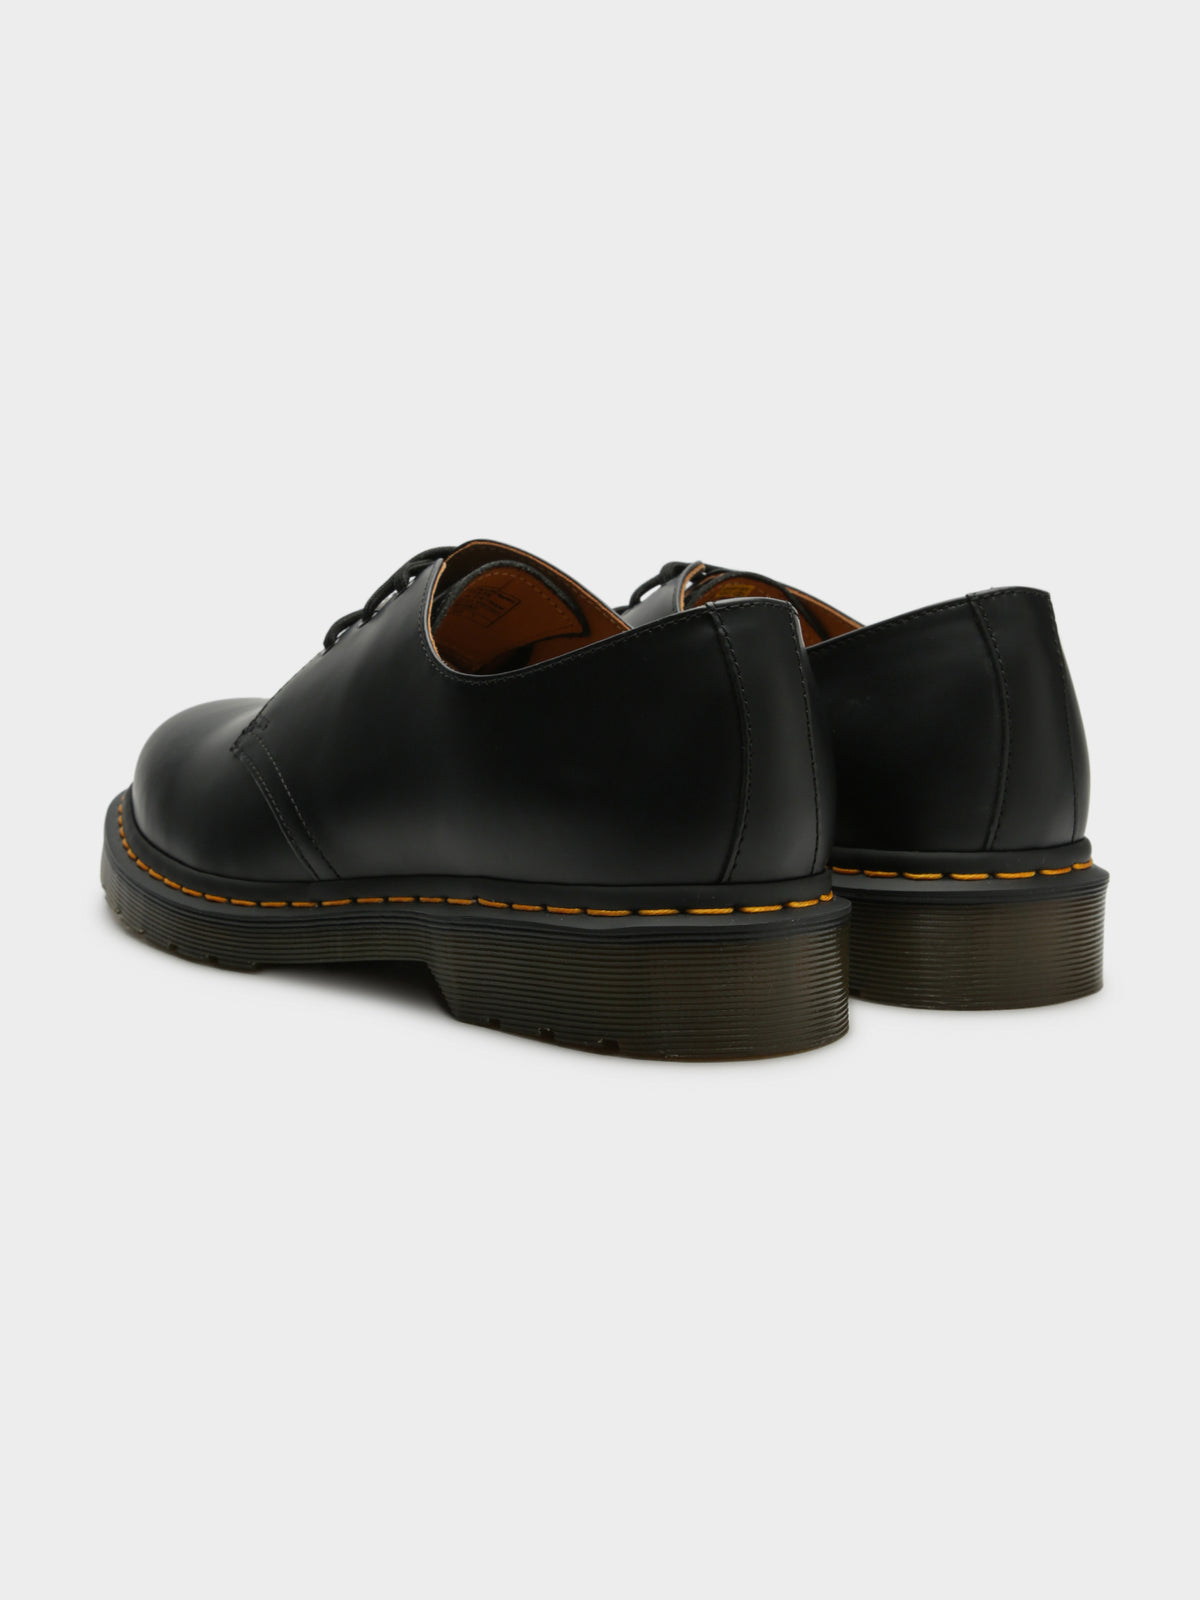 Unisex 1461 Oxford Shoes in Smooth Black Noir Leather